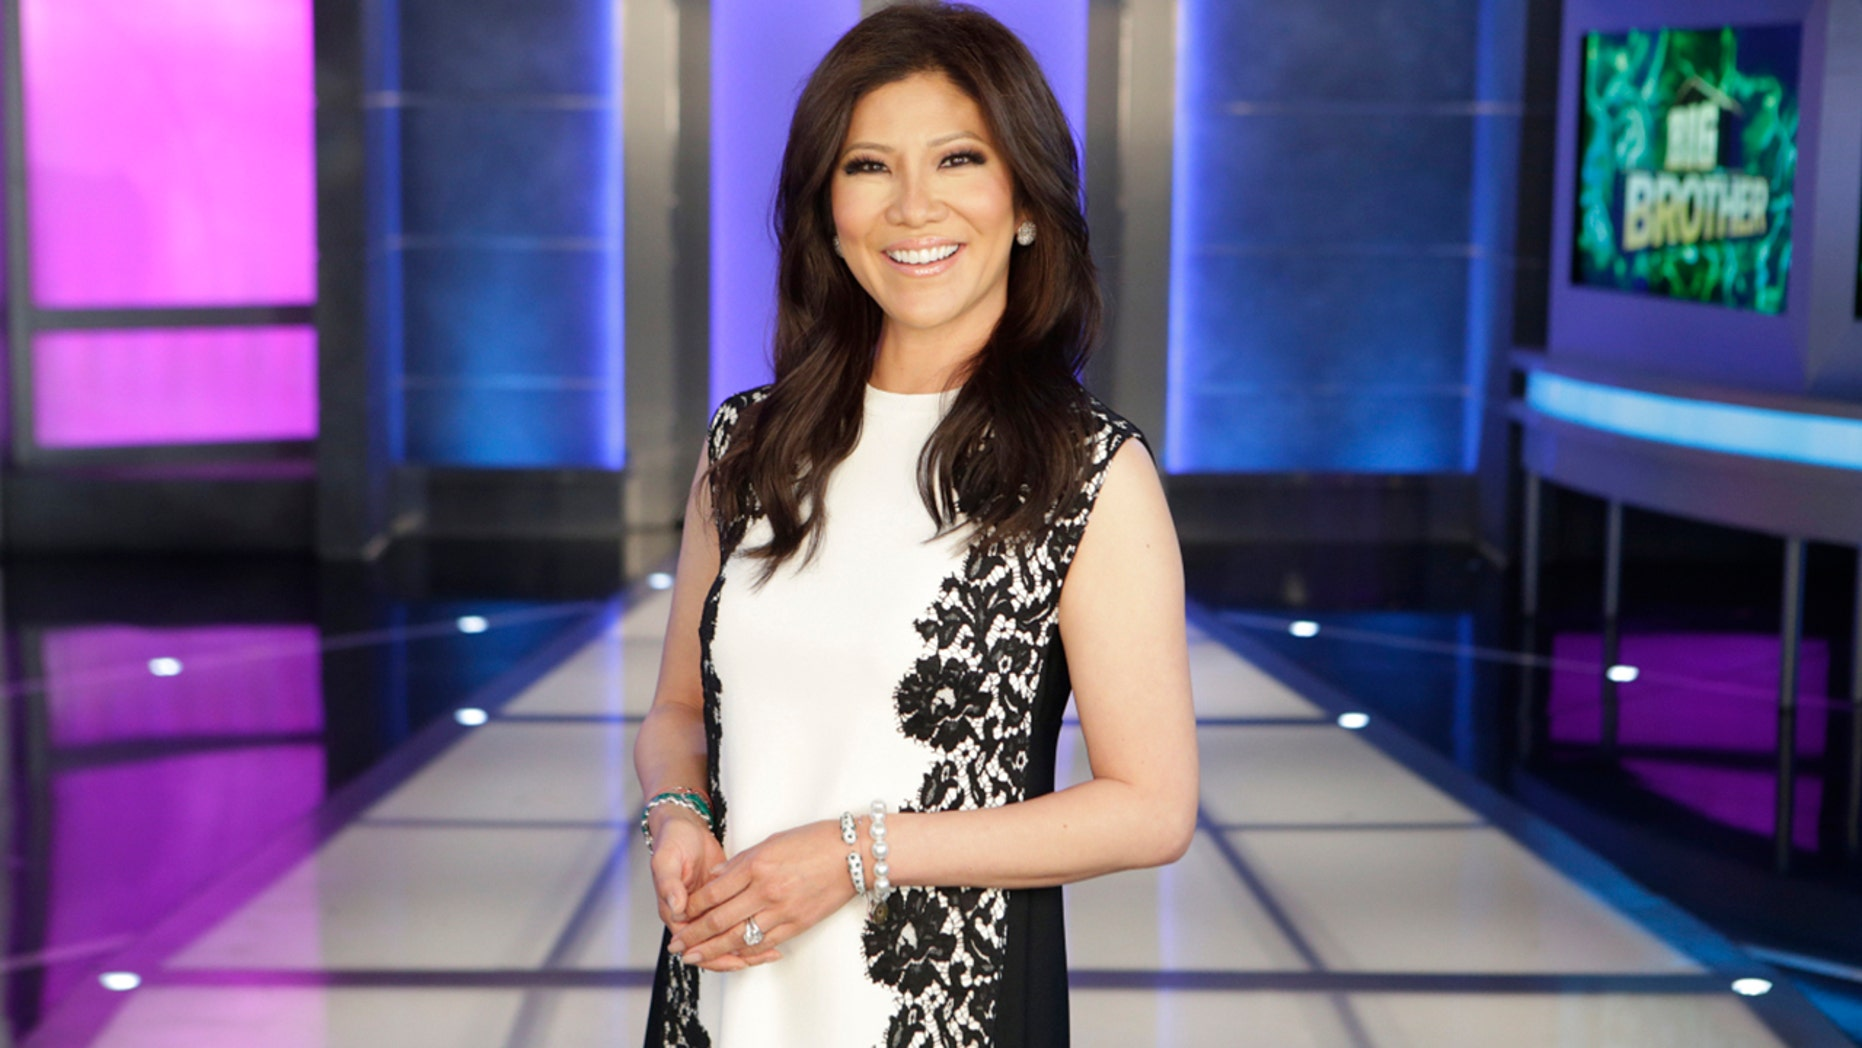 """Big Brother"" host Julie Chen discussed the show's latest season."